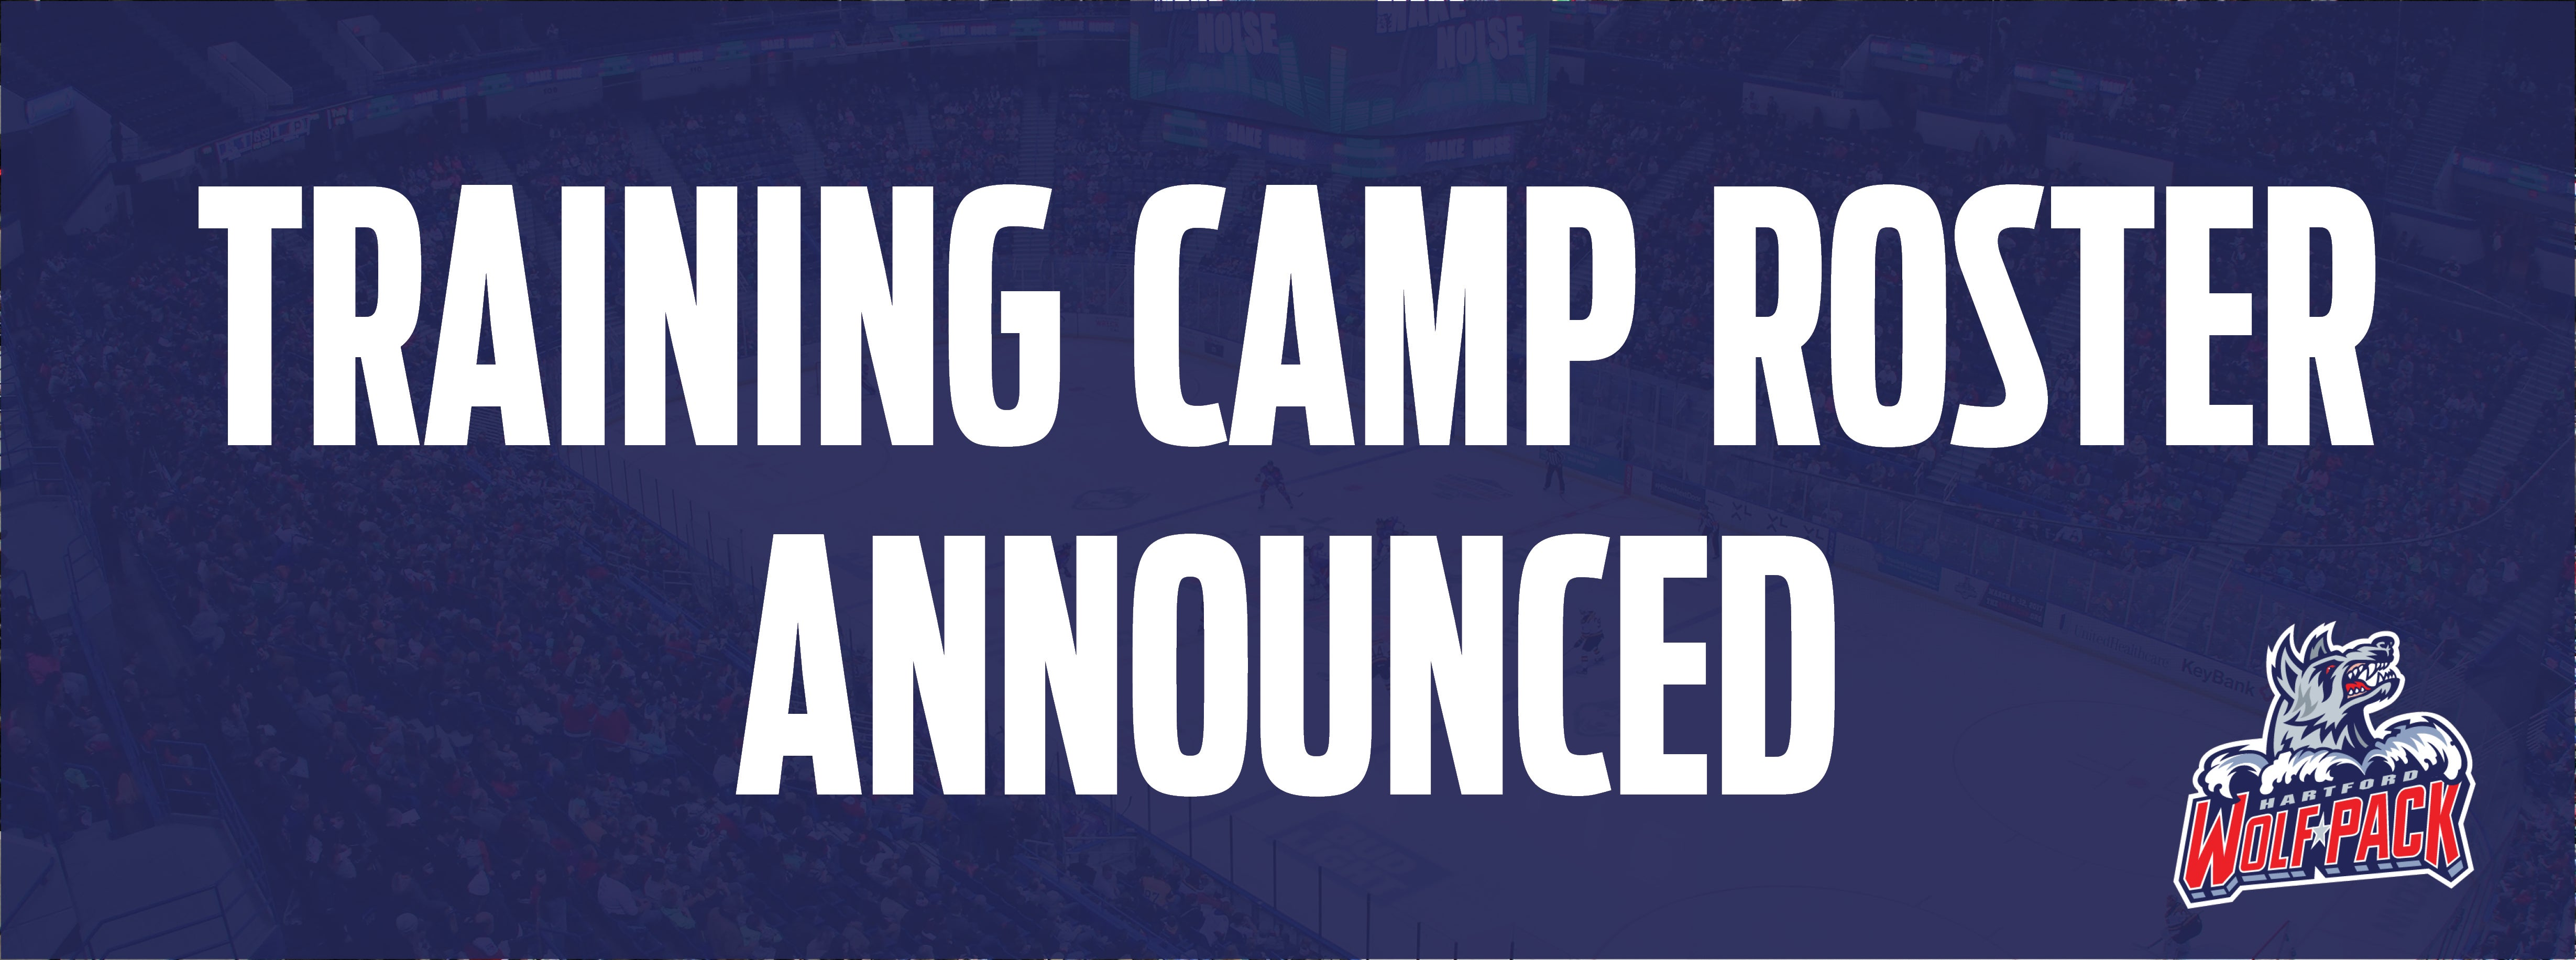 Training Camp Roster Announced